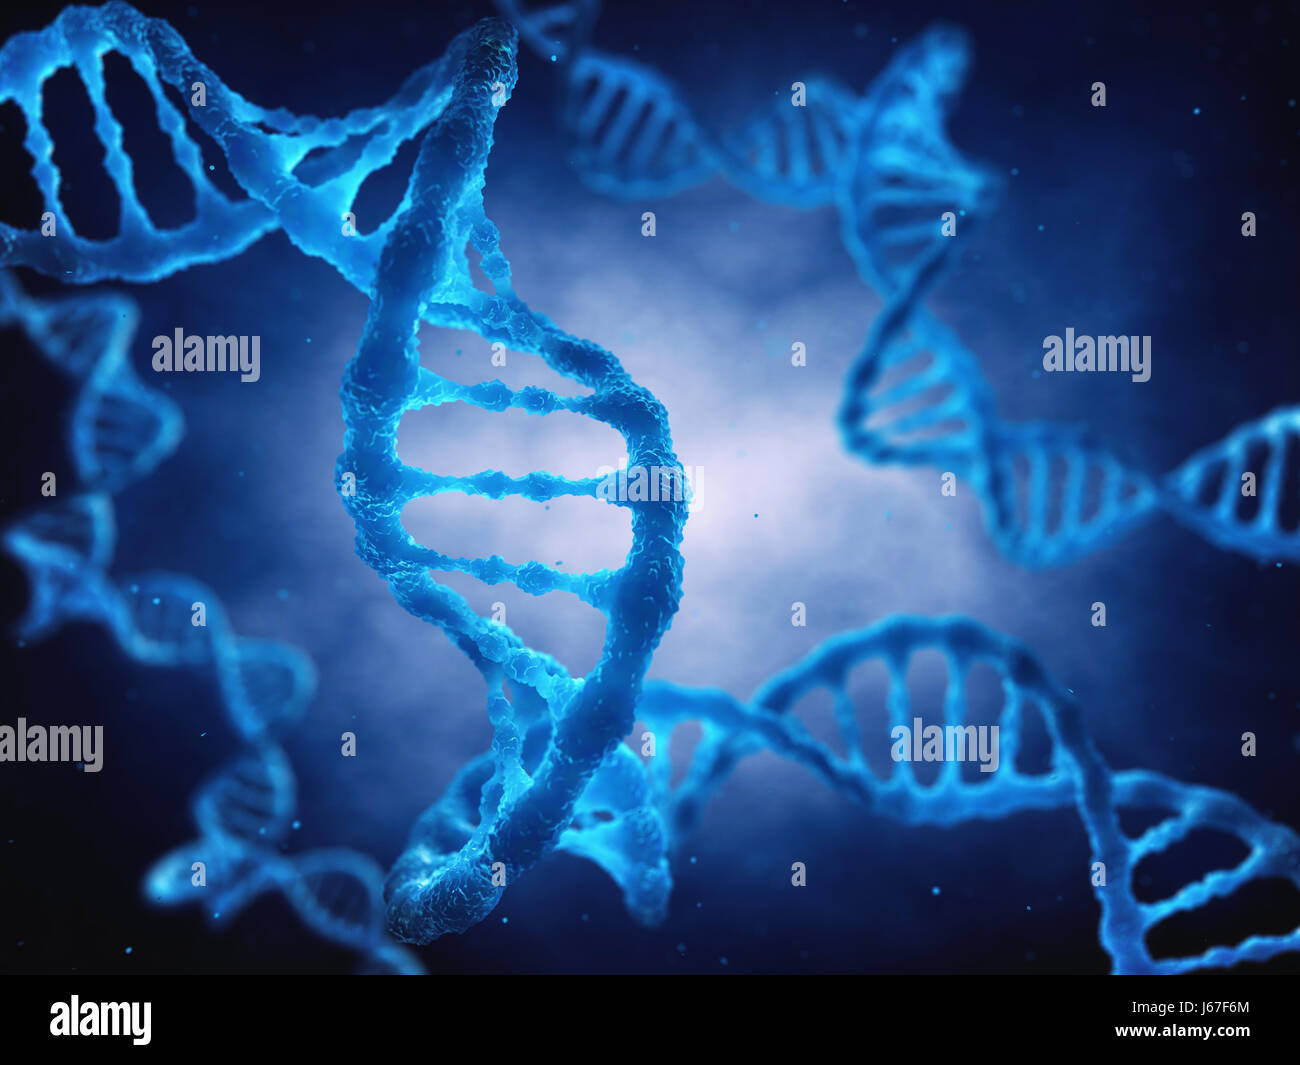 The DNA double helix molecule is the genetic blueprint for life , Molecular genetics - Stock Image